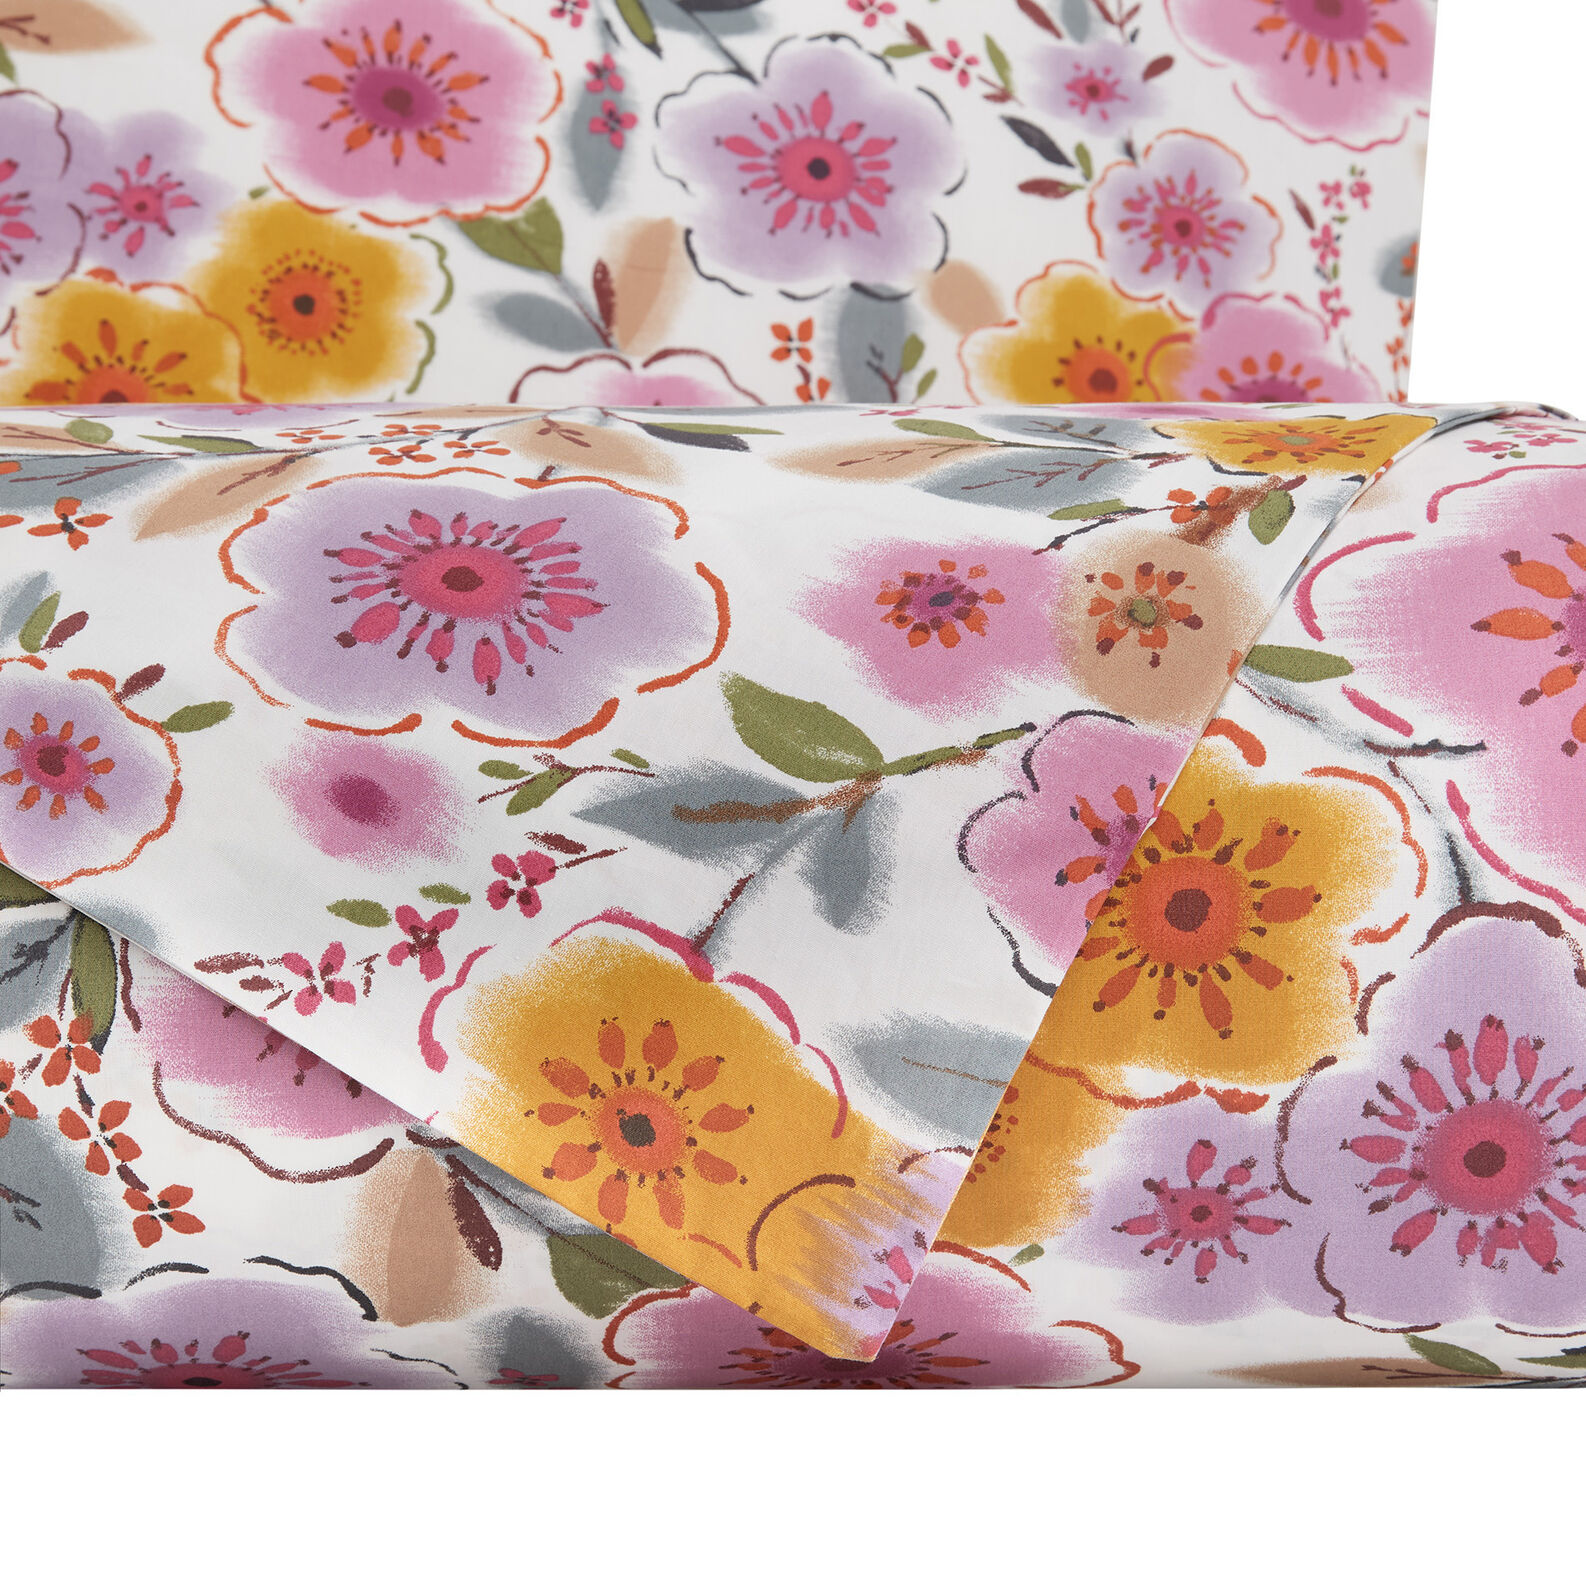 Cotton percale duvet cover set with flowers pattern